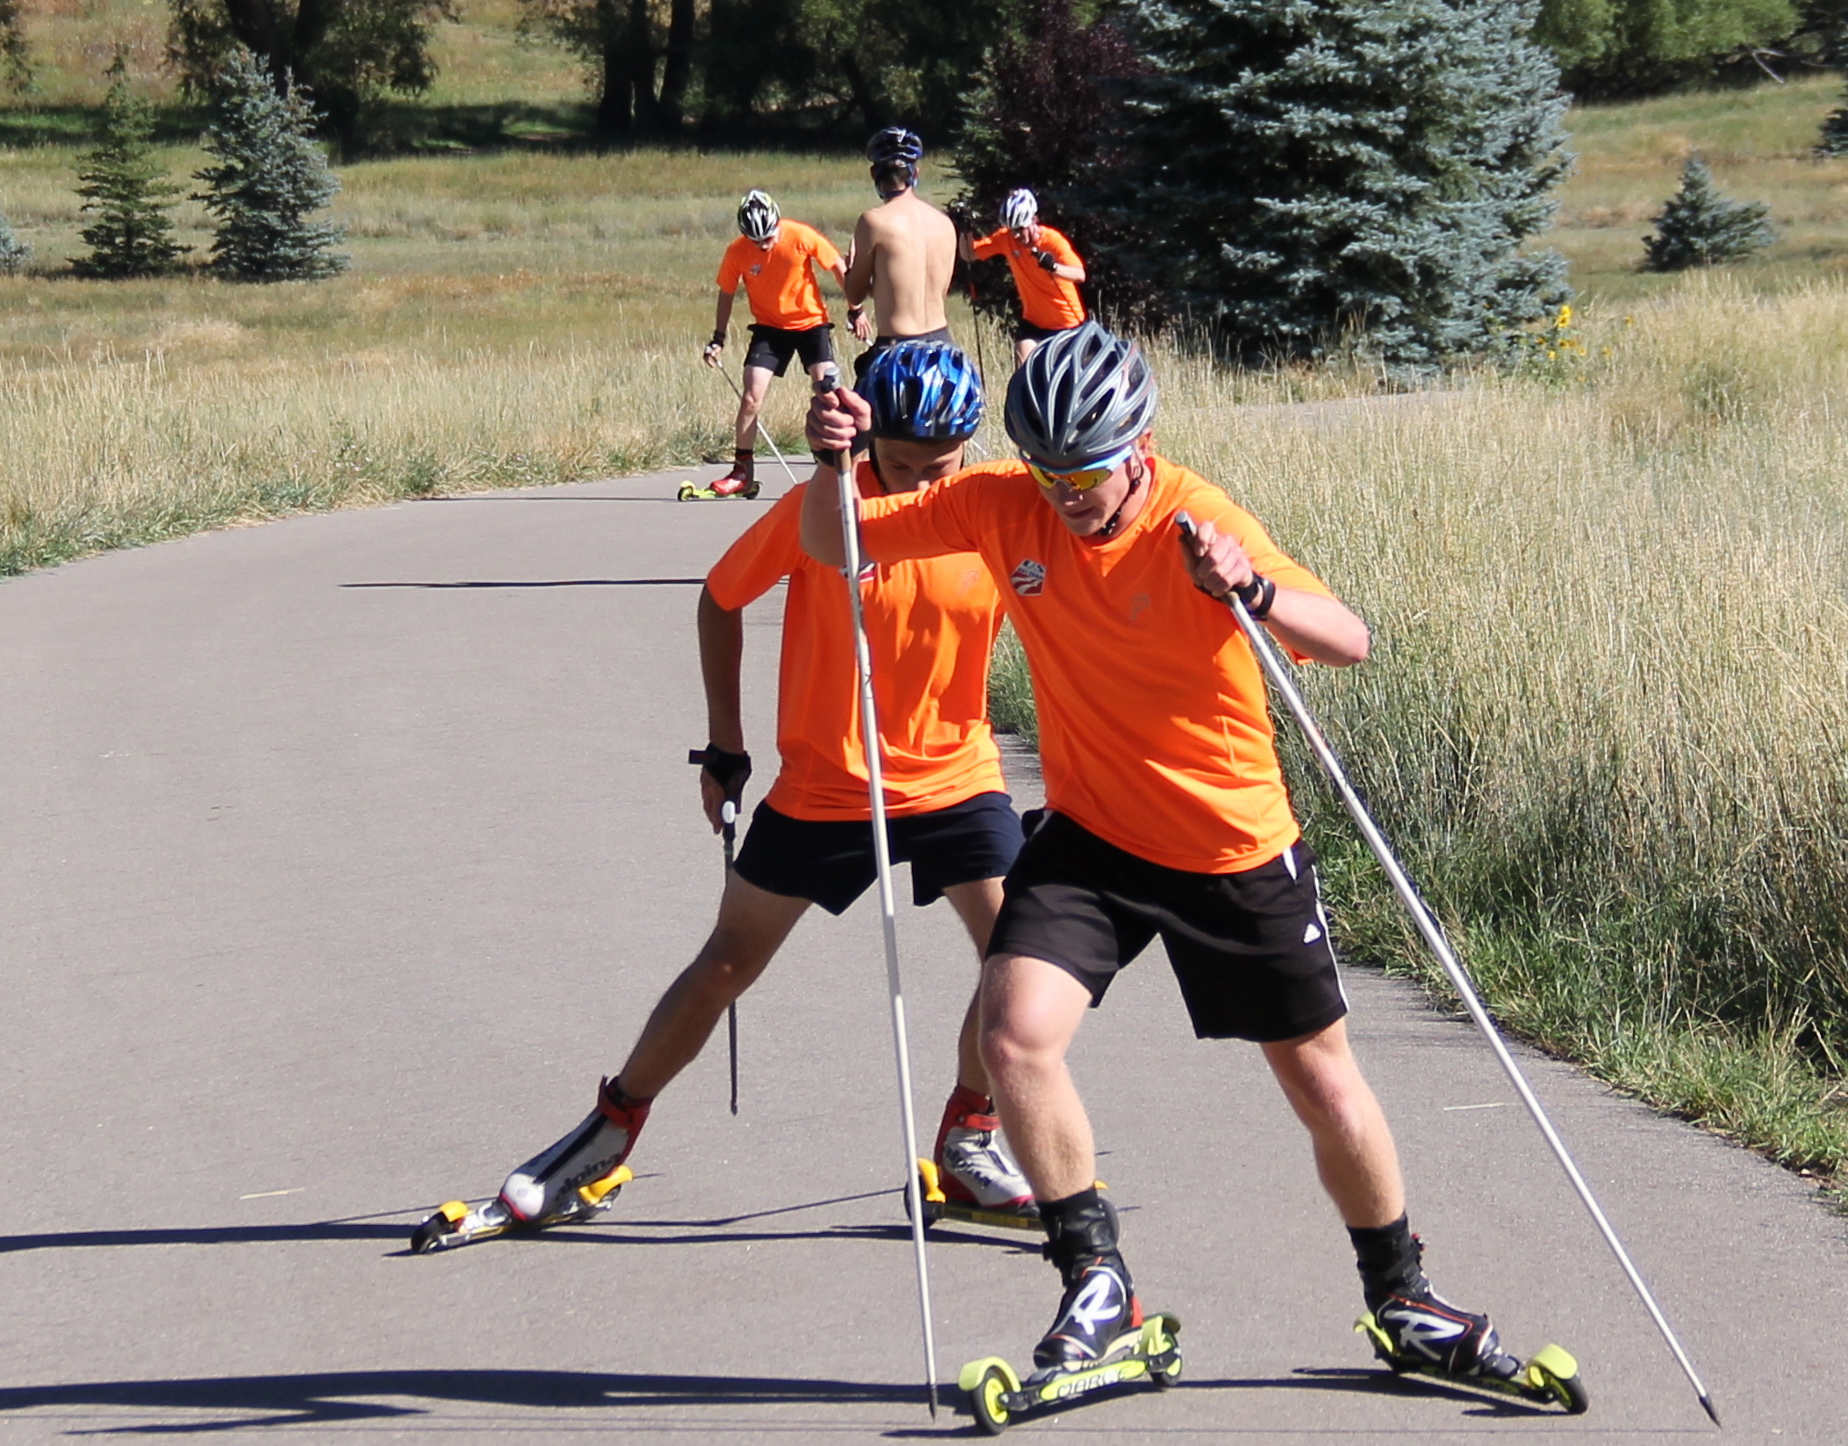 Athletes at the U20 NTG Camp in Park City, Utah rollerski during a latest instruction session. (Photograph: Bryan Fish)